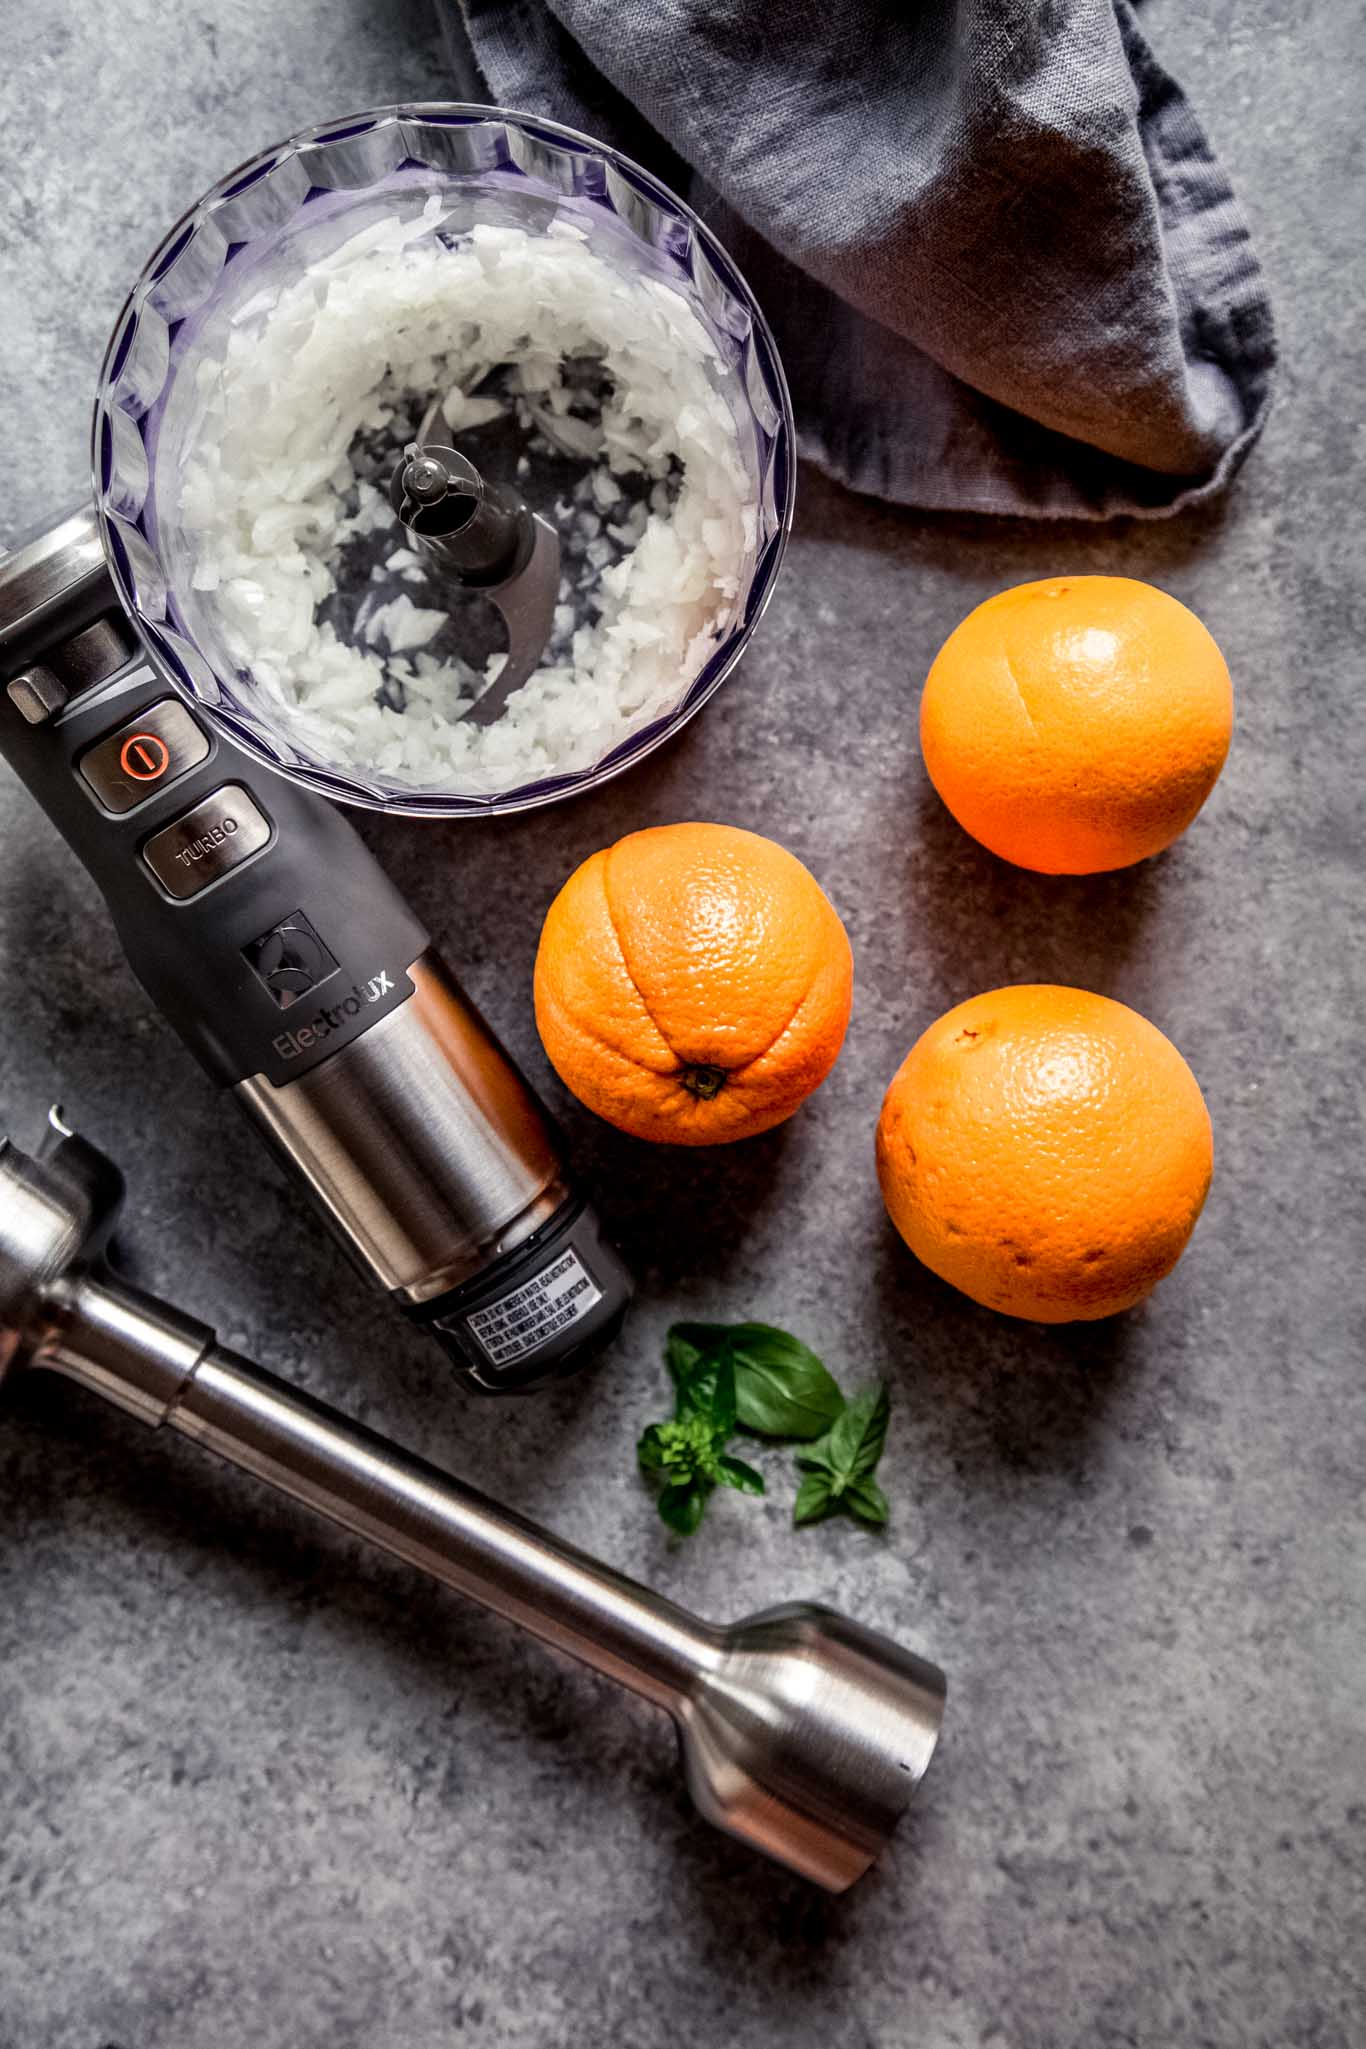 Oranges and onions next to immersion blender.